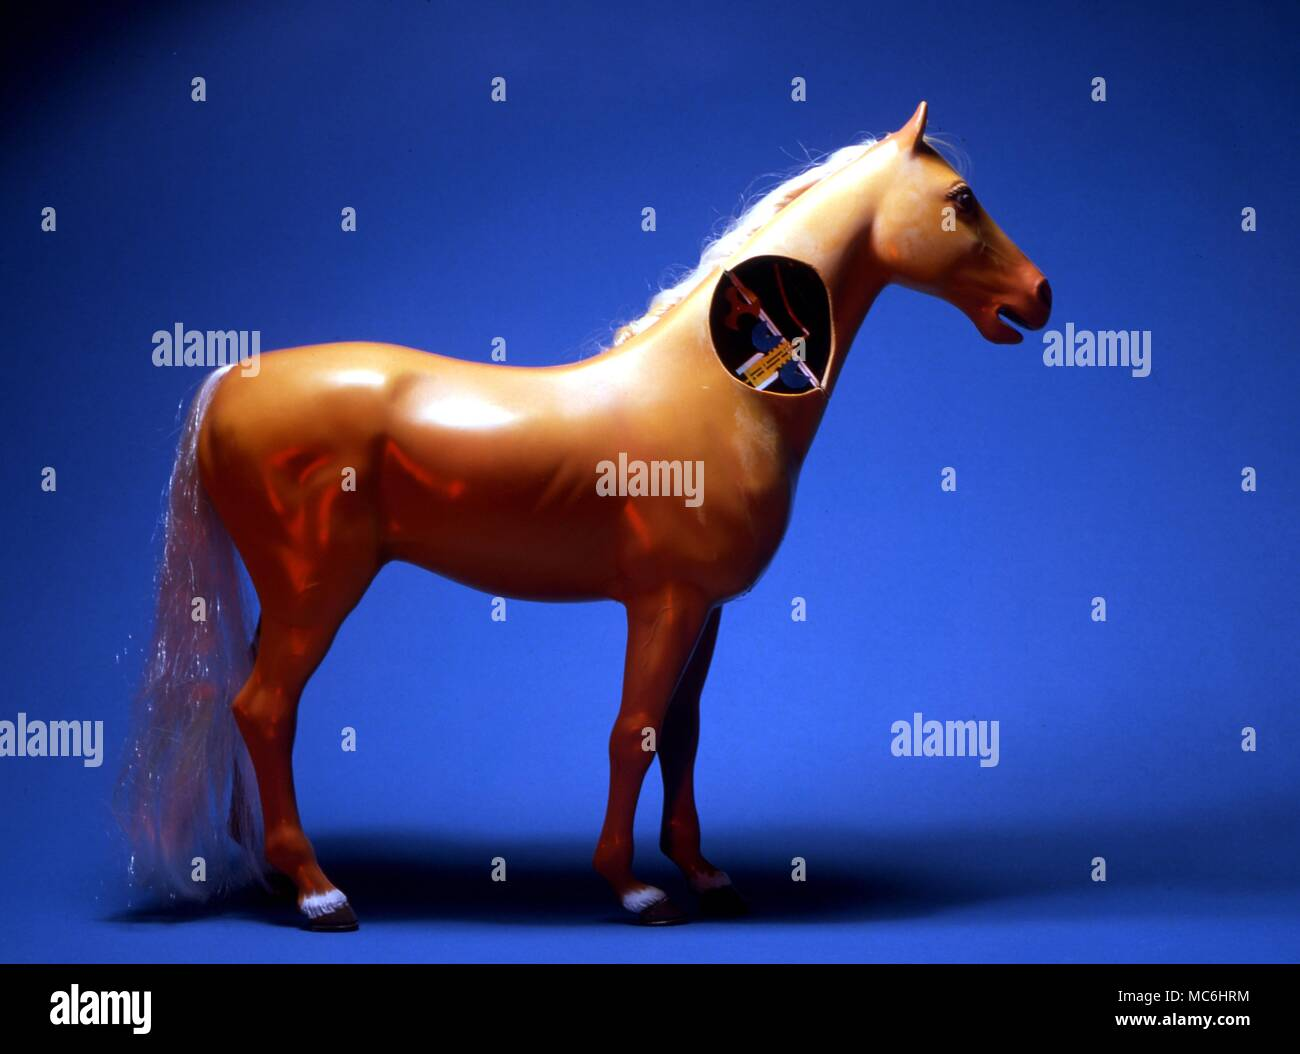 Stage Magic Mechanism For Hero S Horse The Mechanism Setin The Neck Of The Model Horse Permits A Sword To Cut Through The Neck Without The Head Being Cut Off The Horse Is